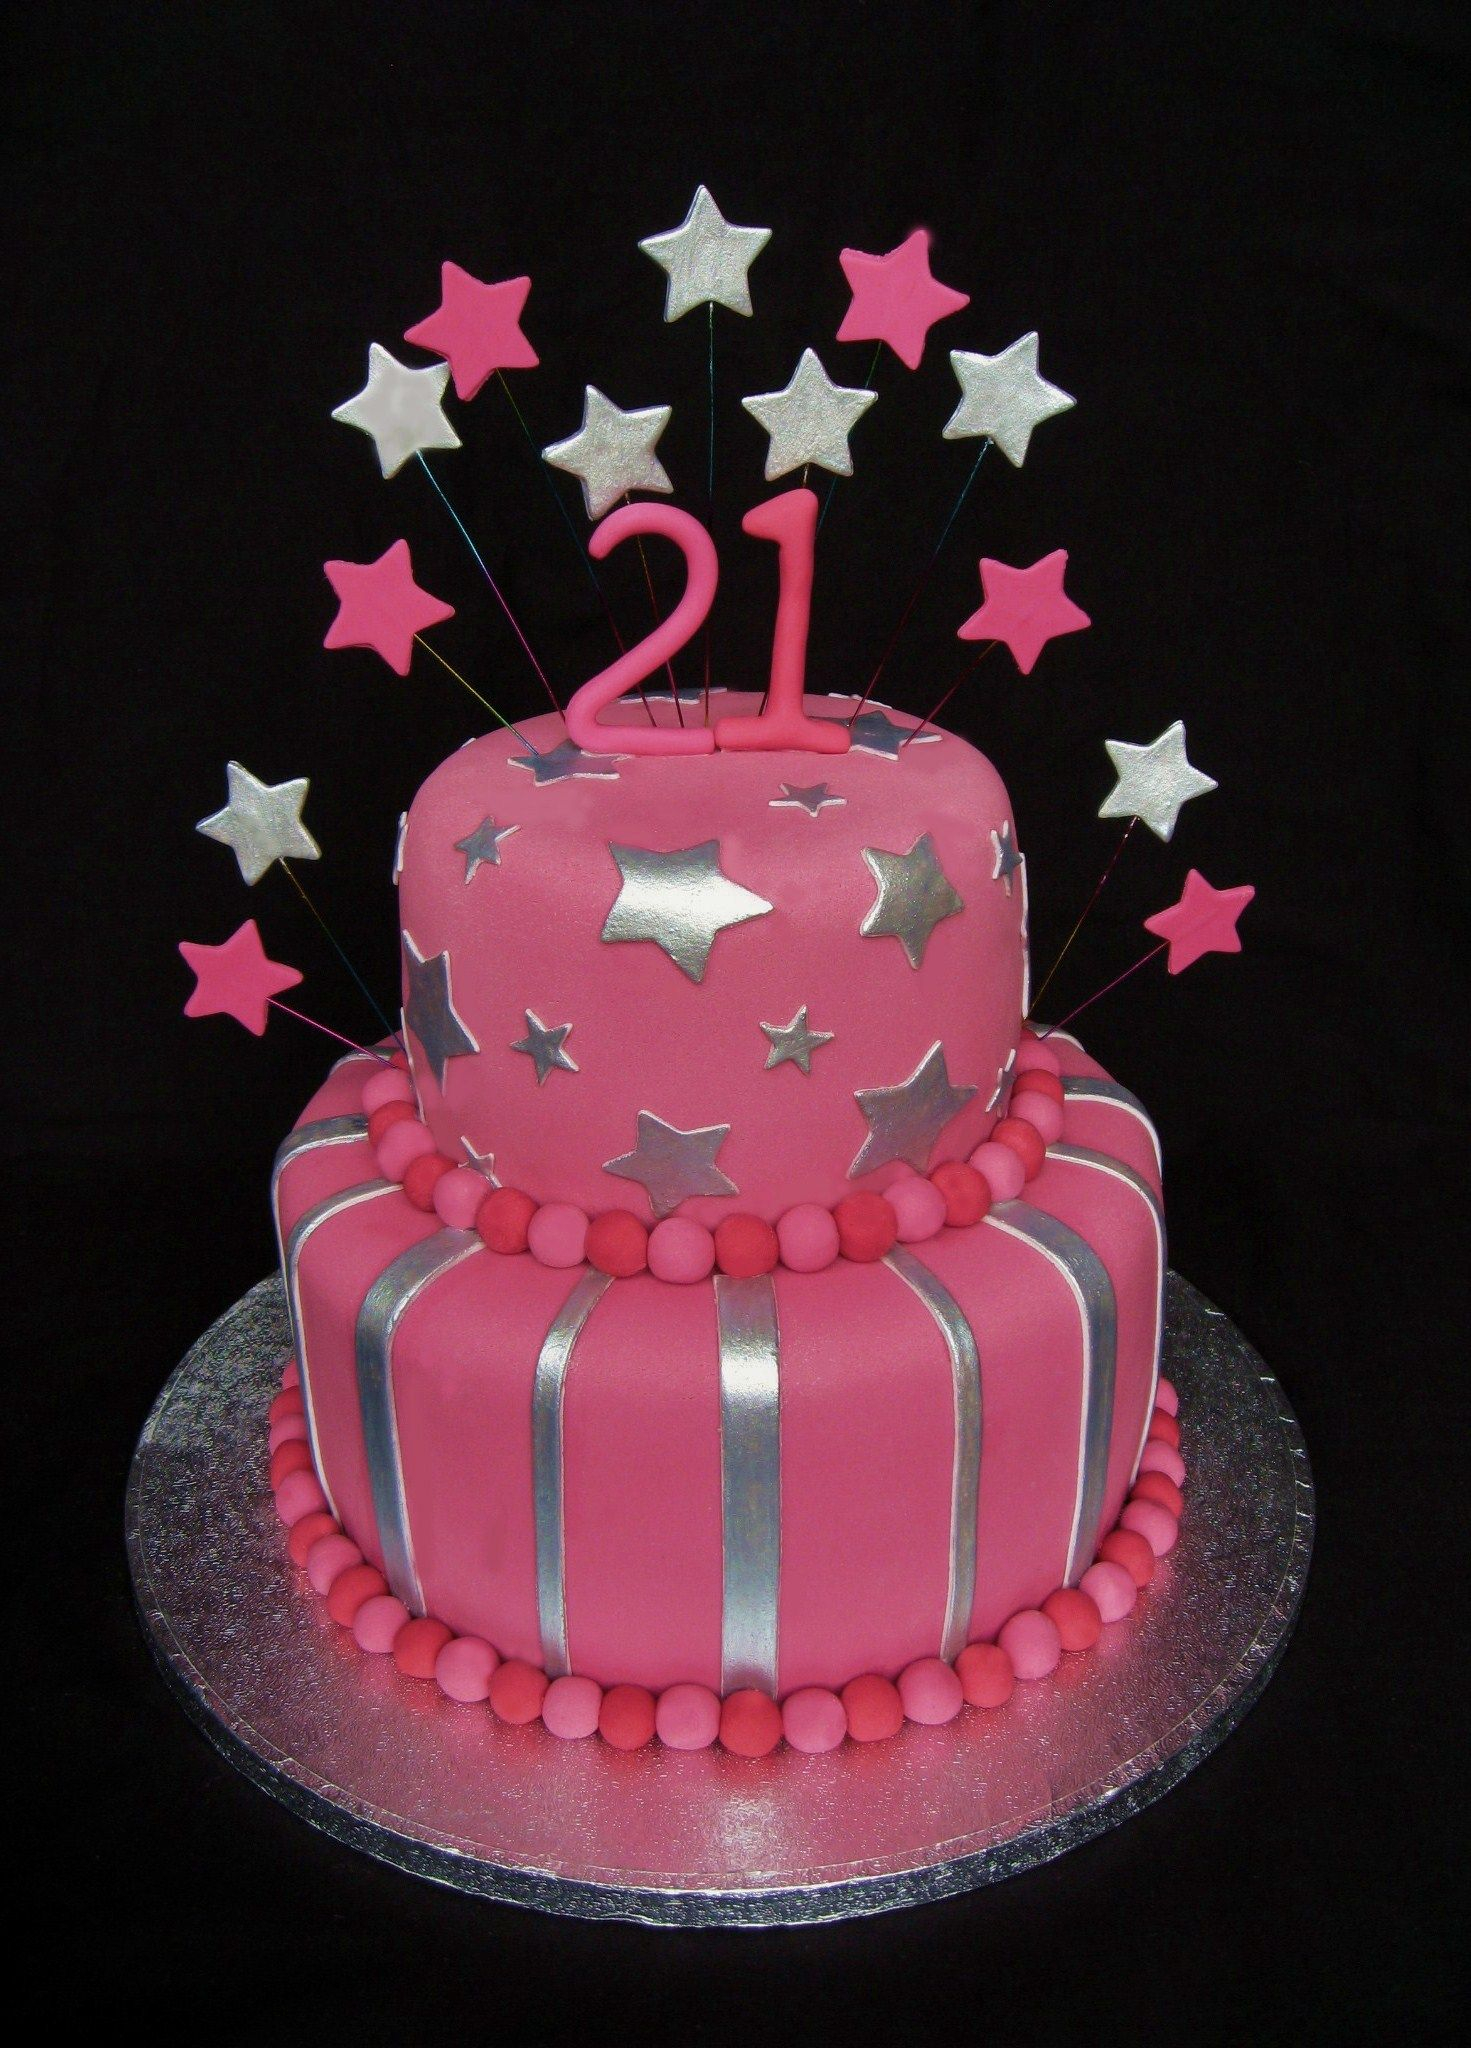 Magnificent 30 Elegant Picture Of 21St Birthday Cakes For Her Birijus Com Funny Birthday Cards Online Barepcheapnameinfo